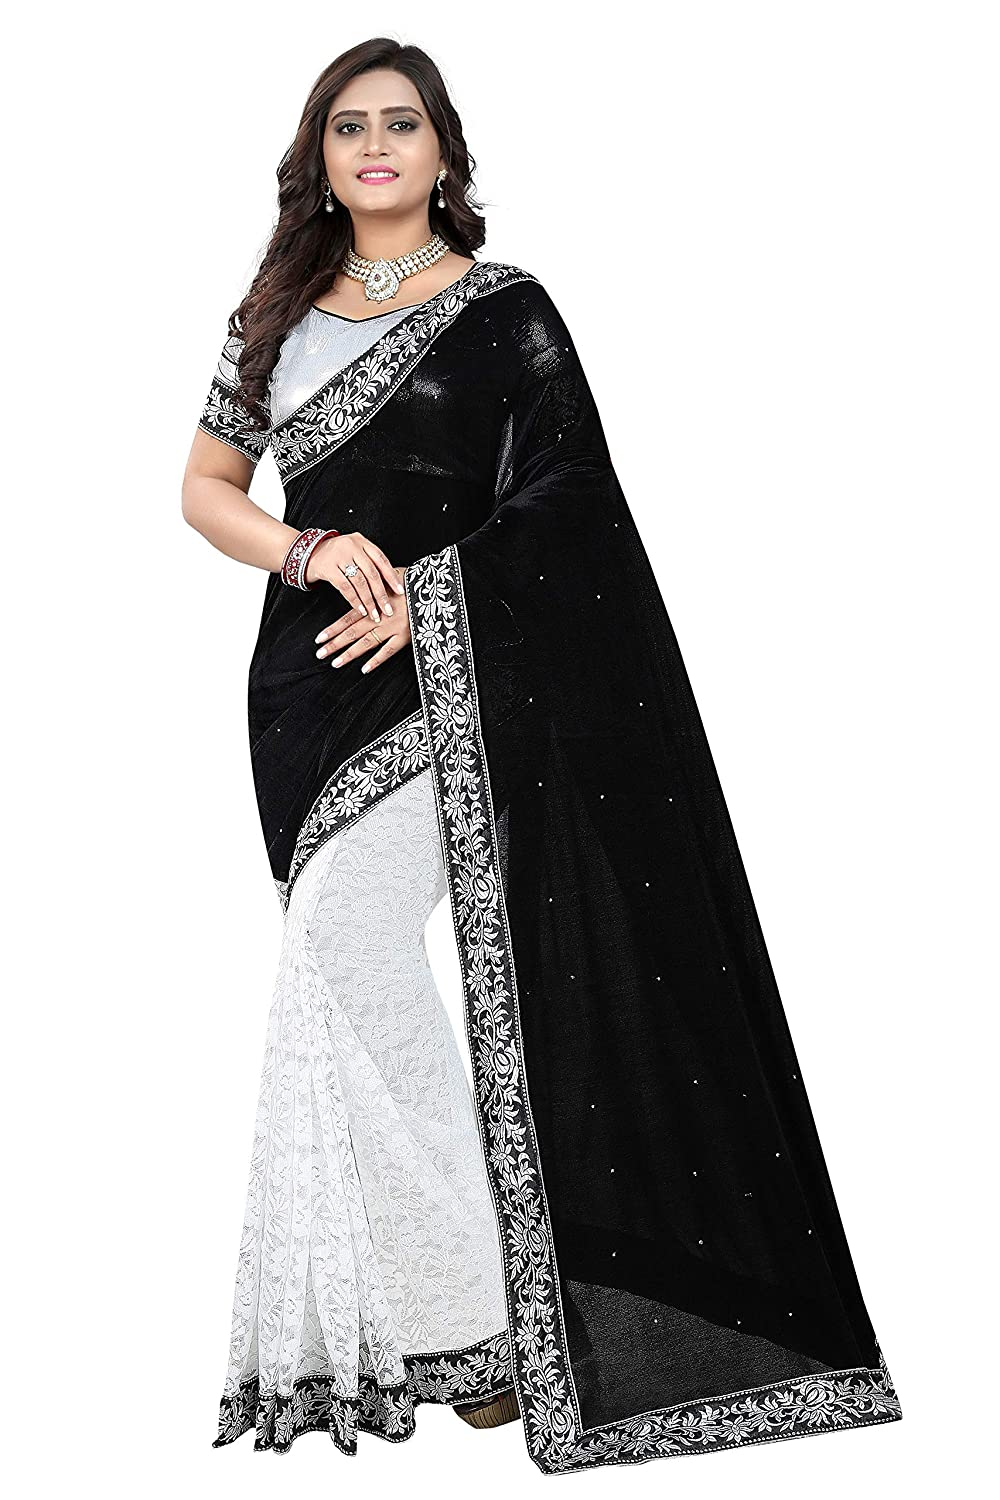 Market Magic World Women's Embroidered Saree with Blouse Piece(Free Size)